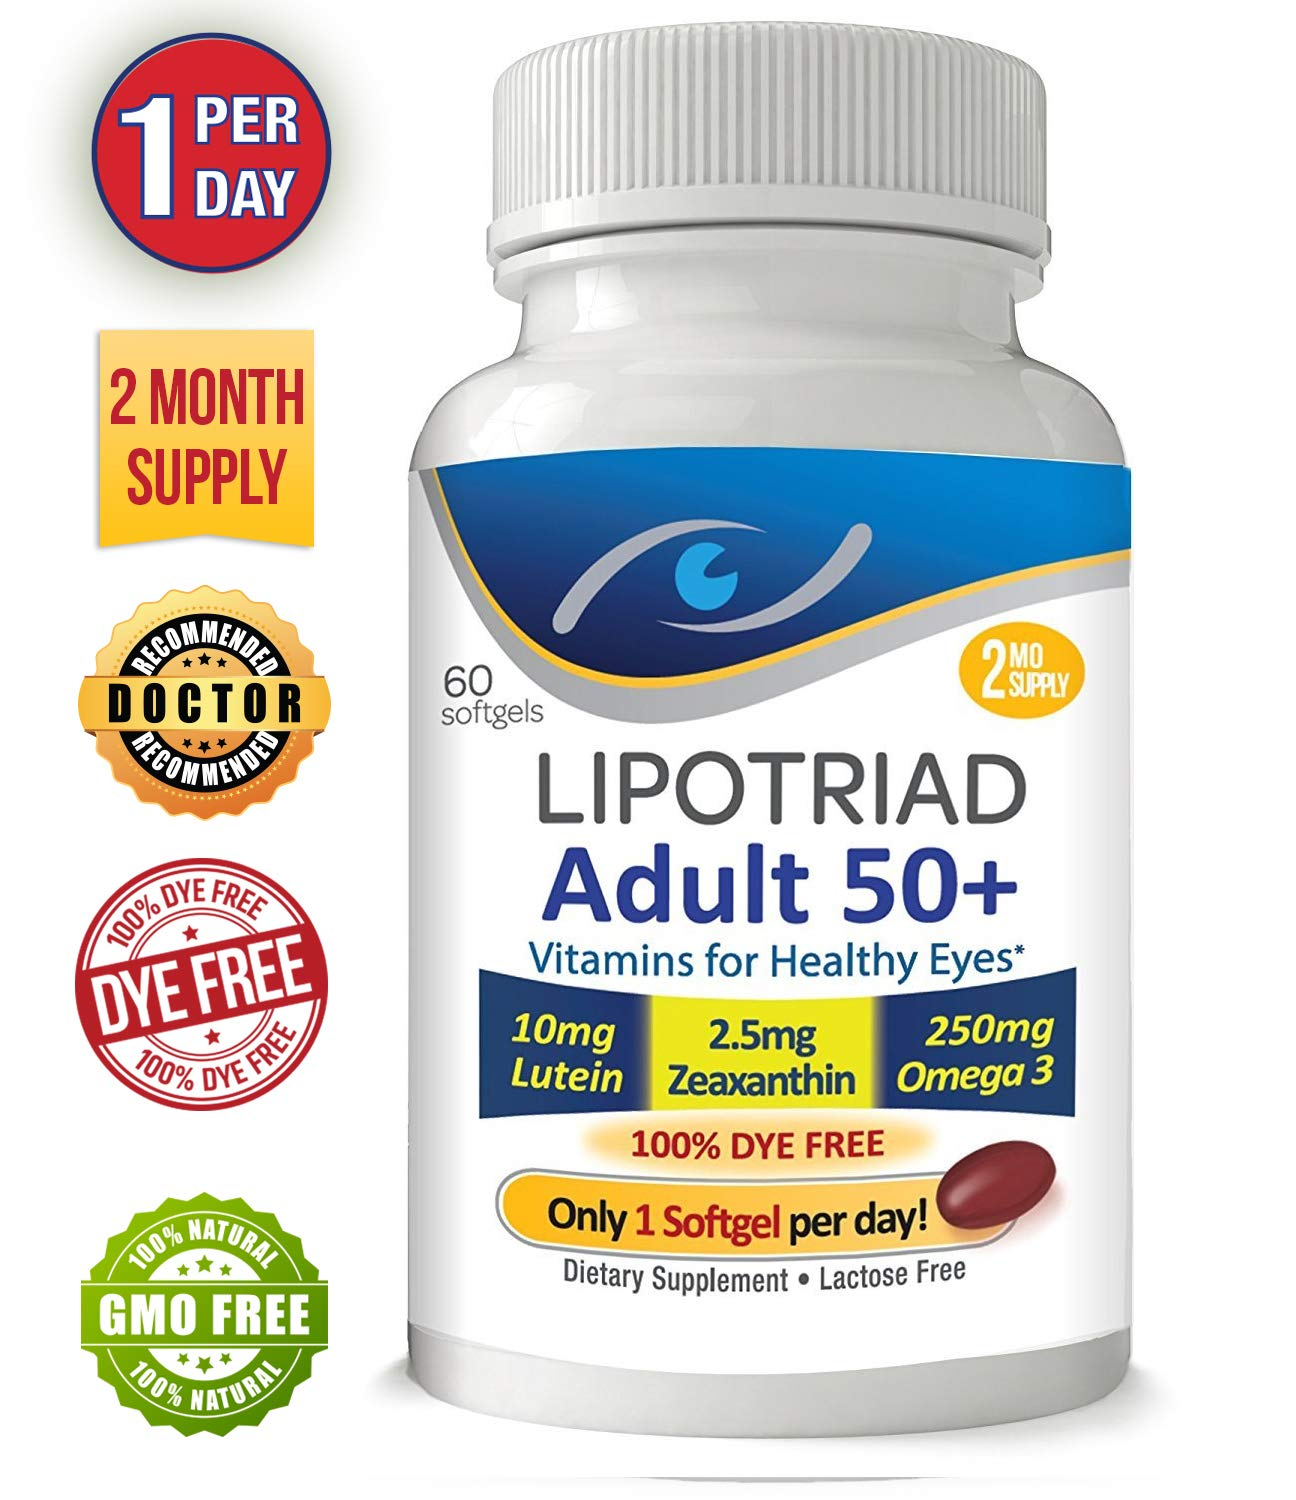 Lipotriad Adult 50+ Eye Vitamin and Mineral Supplement - ONE Per Day Eye Vitamin w/10mg Lutein, Zeaxanthin, Omega 3, Vitamin C, E, Zinc Copper - 2mo Supply, 60 Softgels by Lipotriad